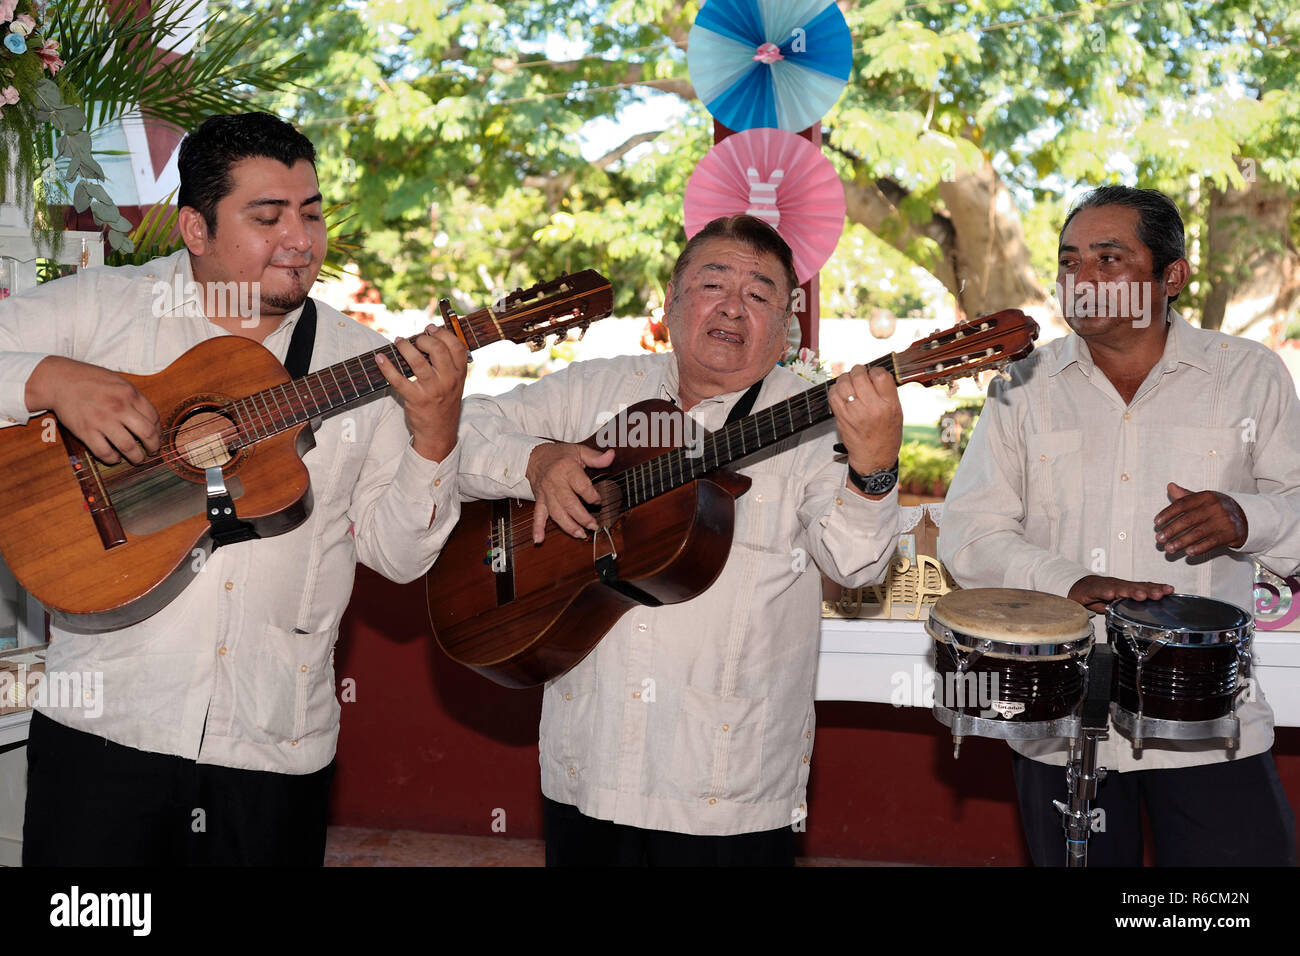 MERIDA, YUC/MEXICO - NOV 13, 2017: a 'Trio' or musical group of three players, performing at a baptism party. - Stock Image